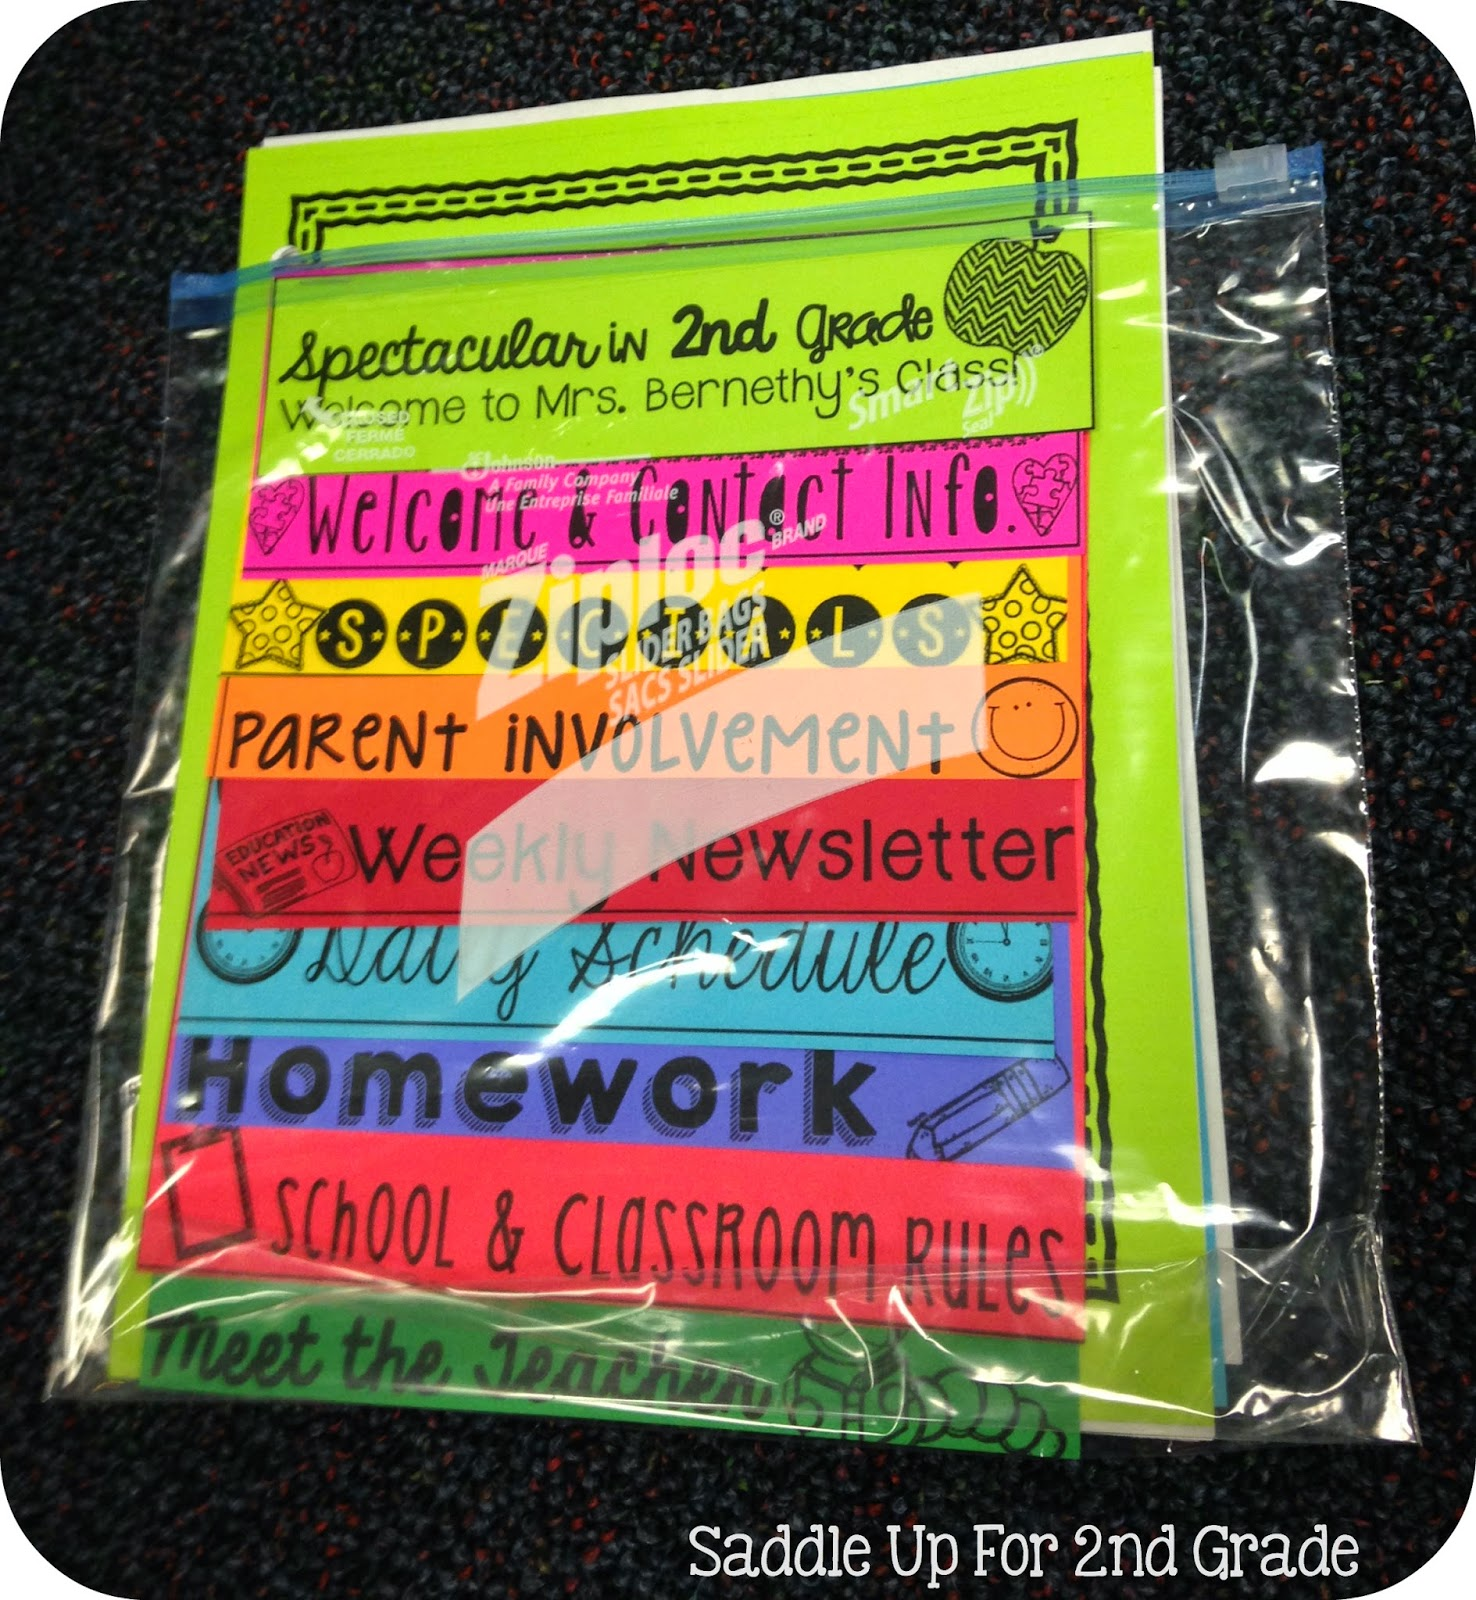 New Student Bags by Saddle Up For 2nd Grade